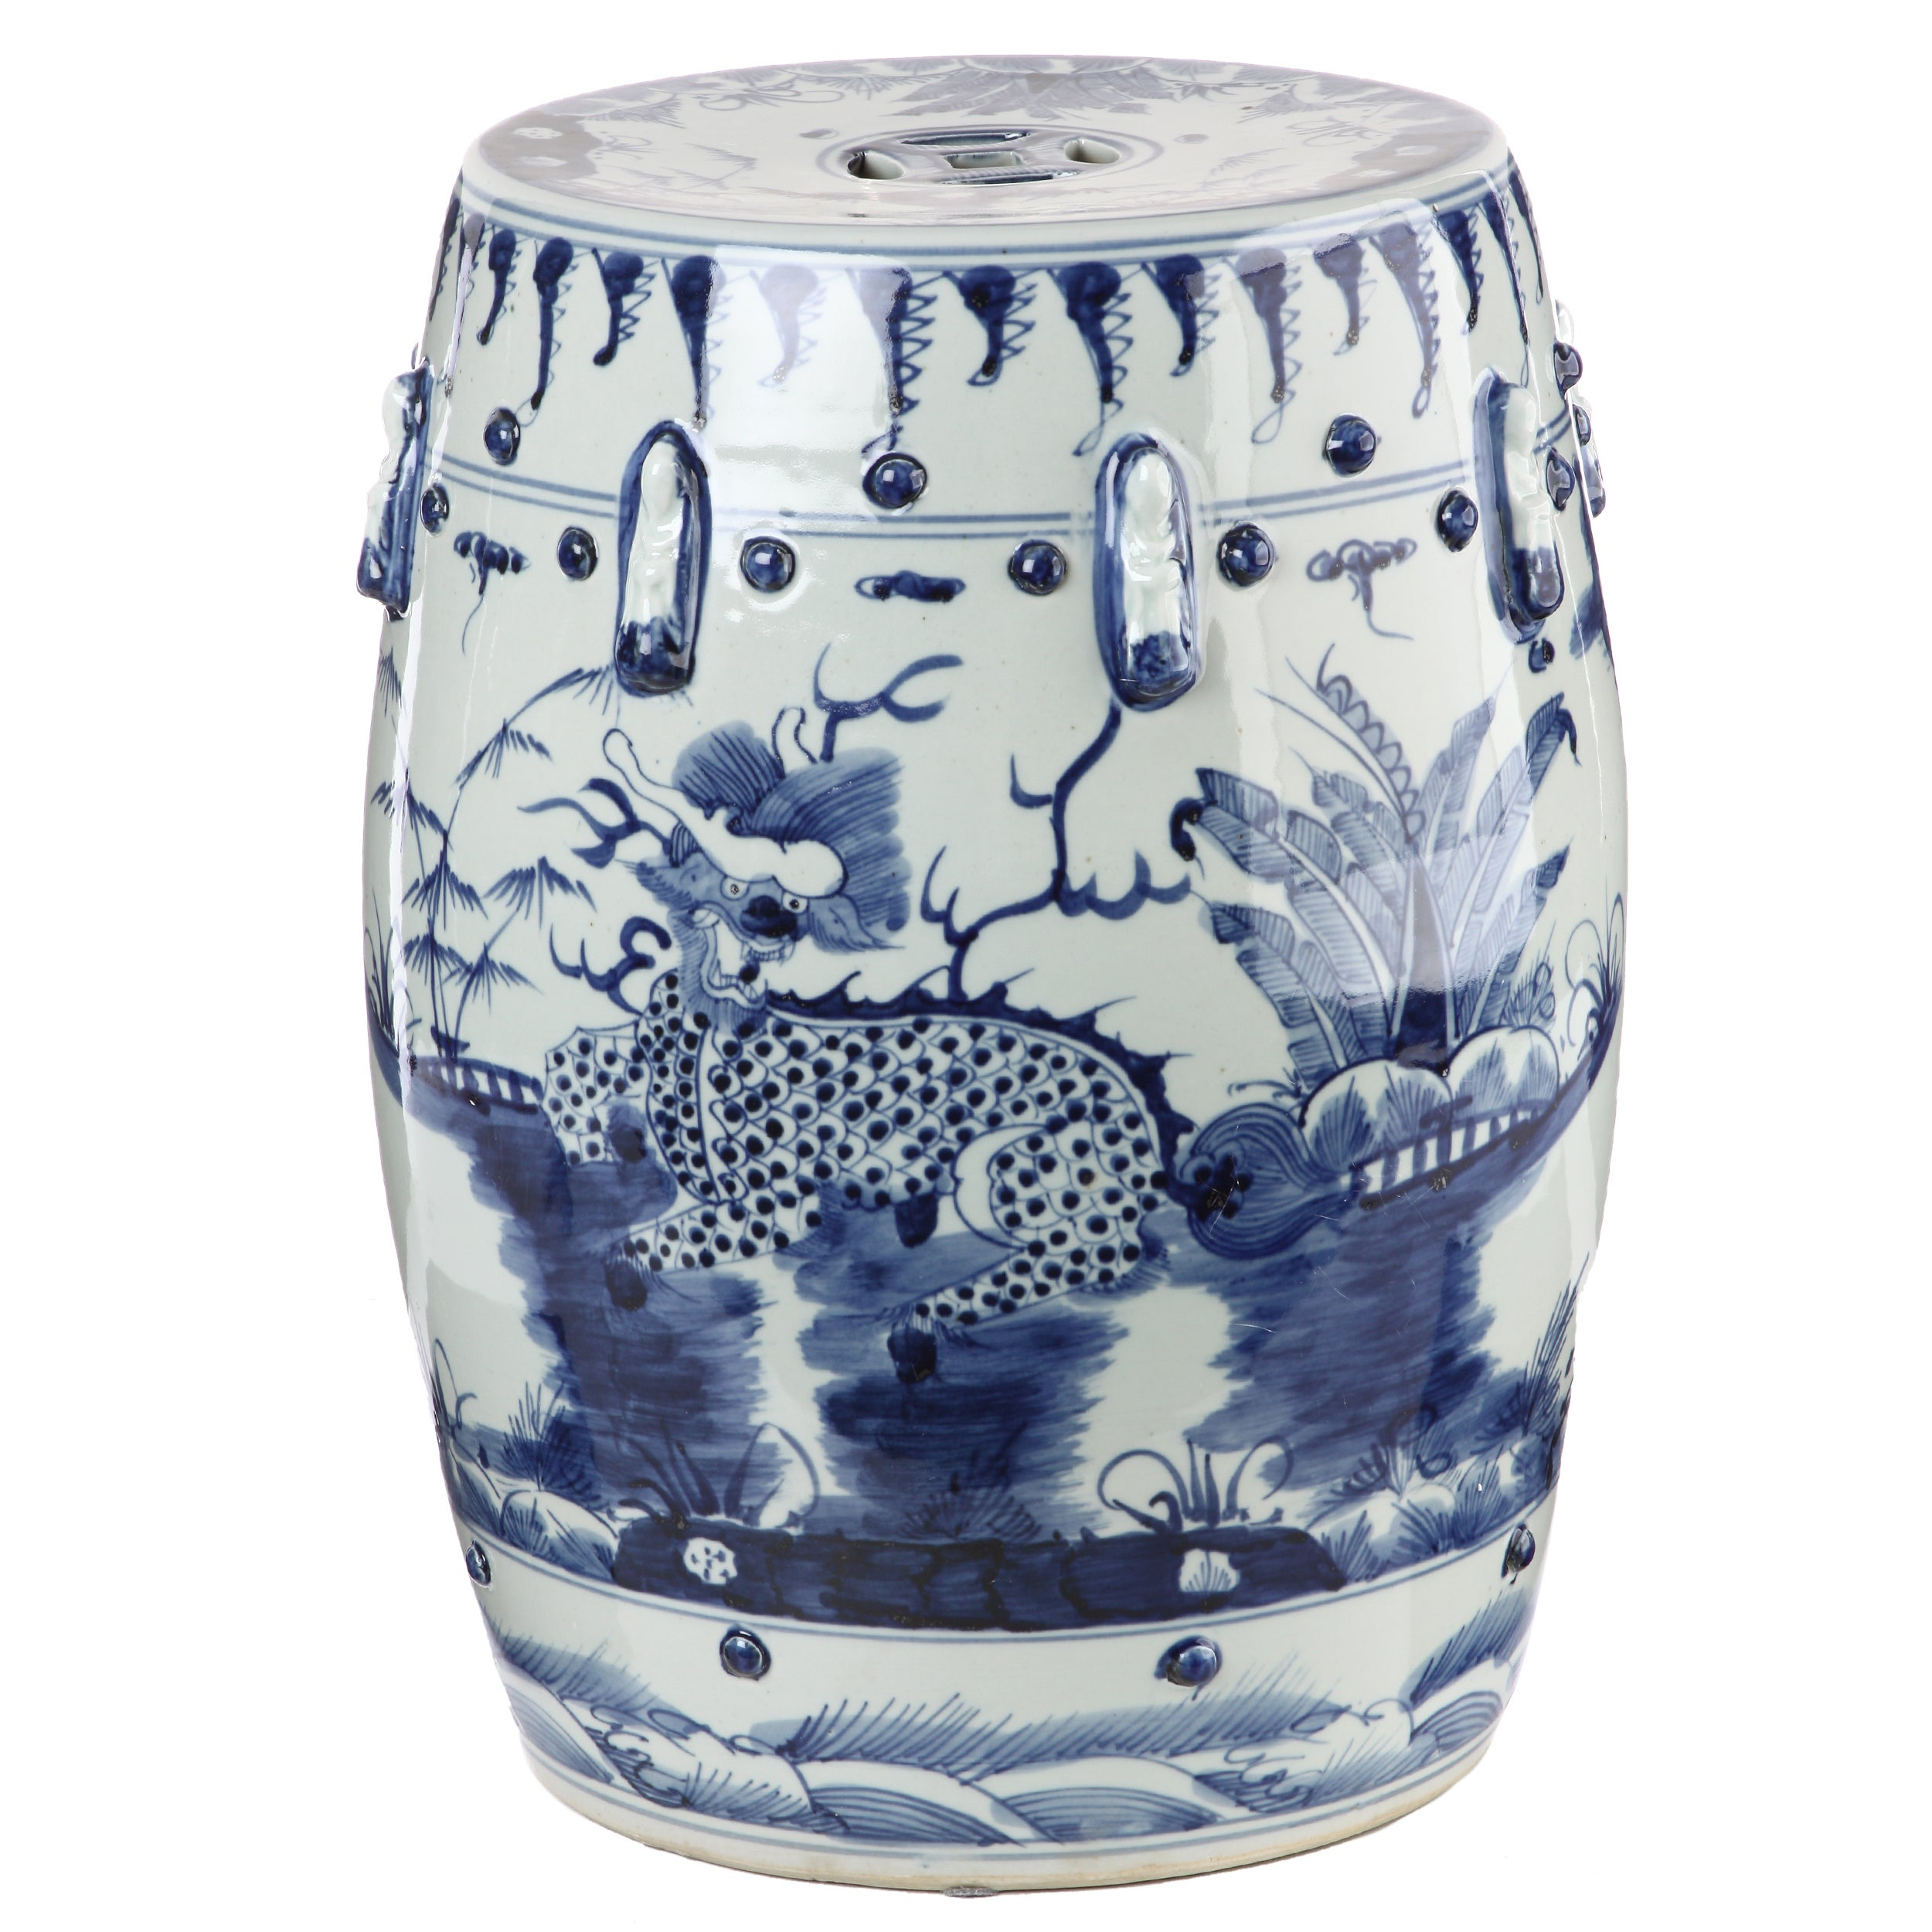 Handmade Blue And White Kylin Chinese Porcelain Garden Stool (China) Regarding Dragon Garden Stools (View 11 of 26)